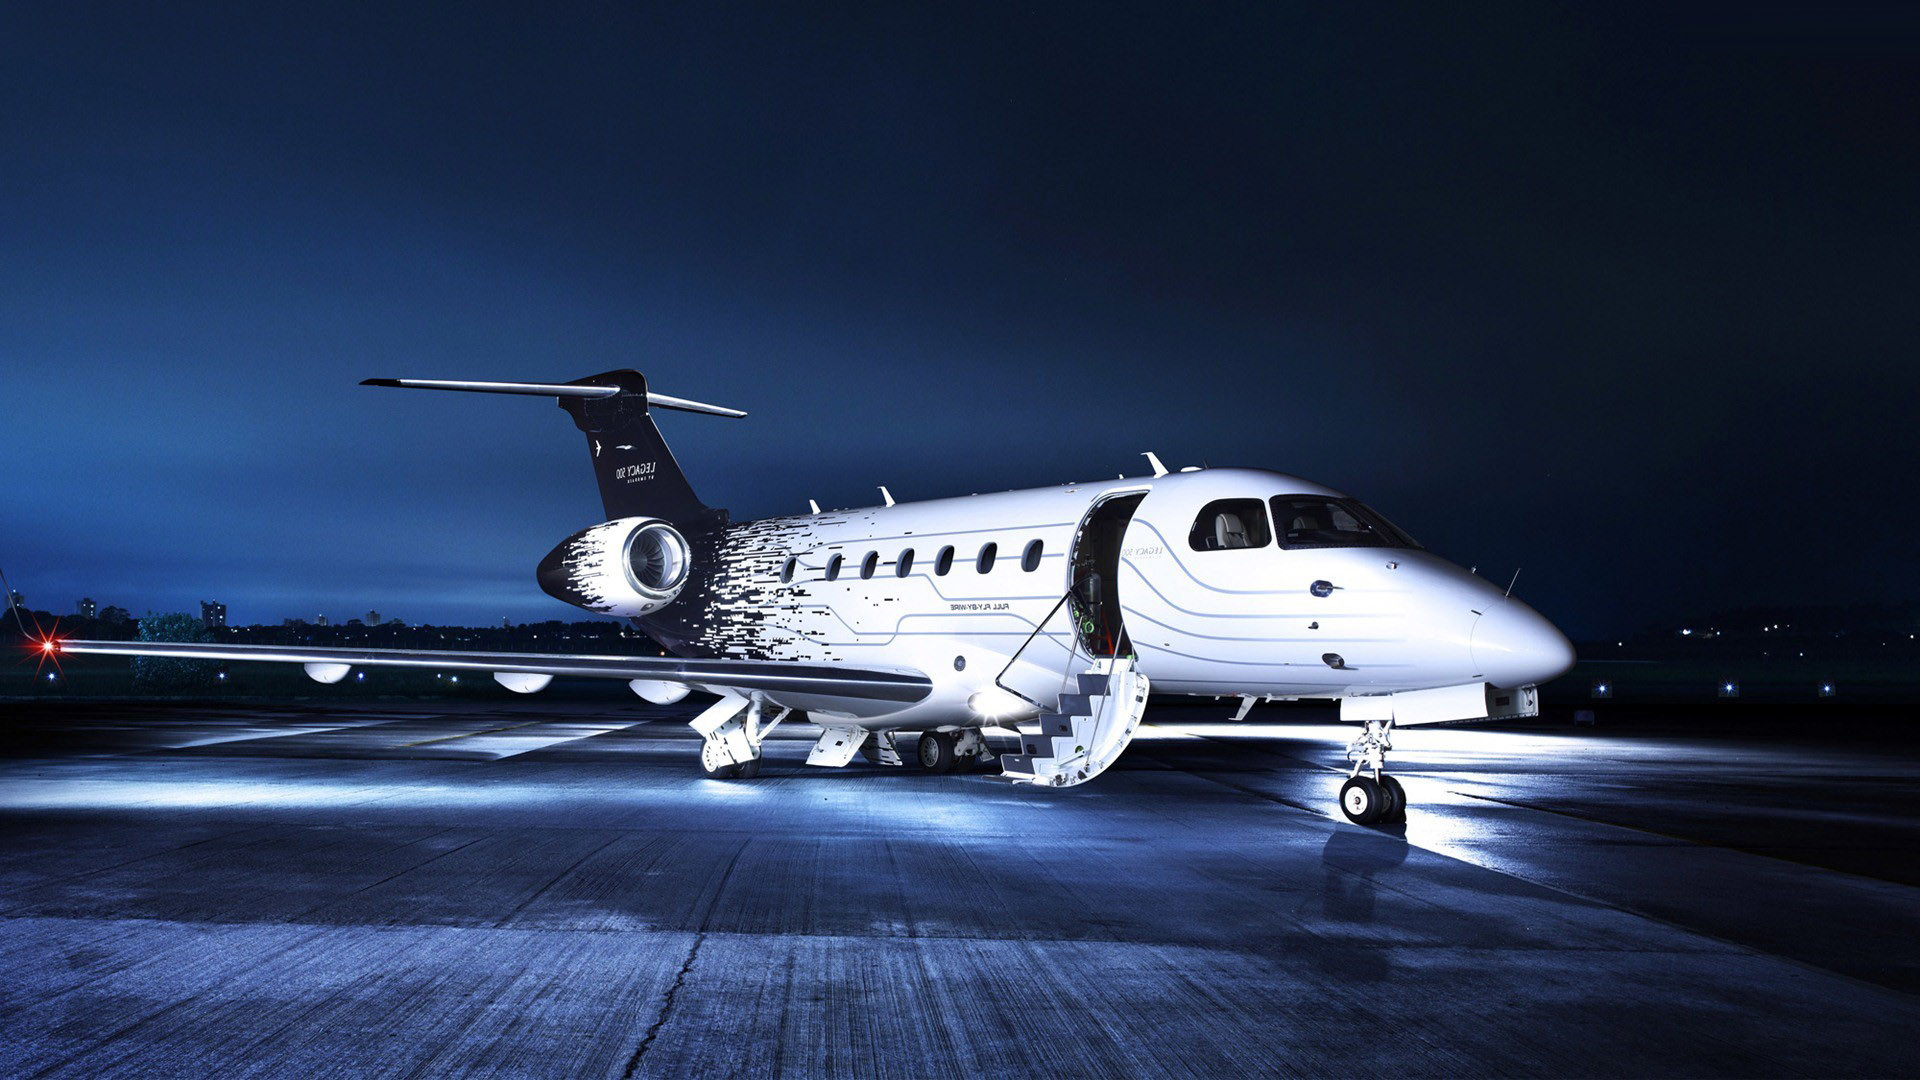 jet private wallpapers cool 1495 wallpapertag mobile